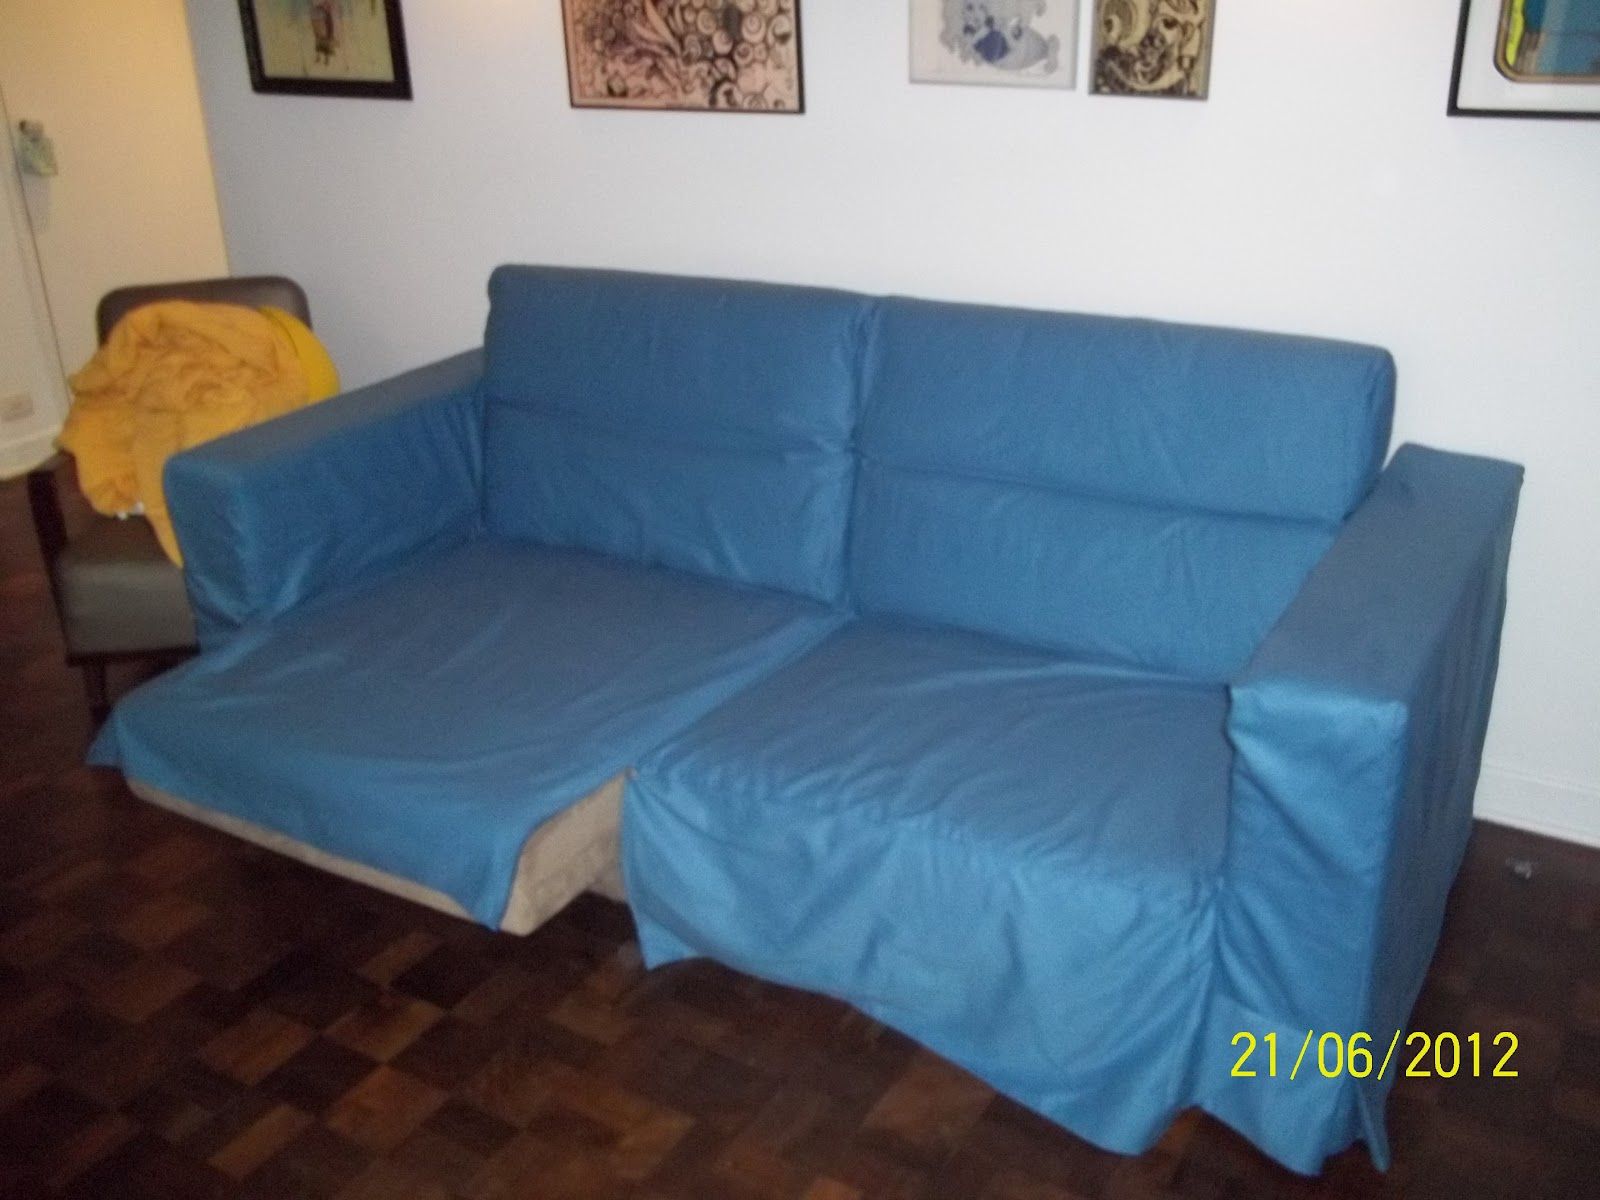 Sofa Retratil E Reclinavel Impermeavel Capa Para Sofa Retratil E Reclinavel 2 3 Lugares